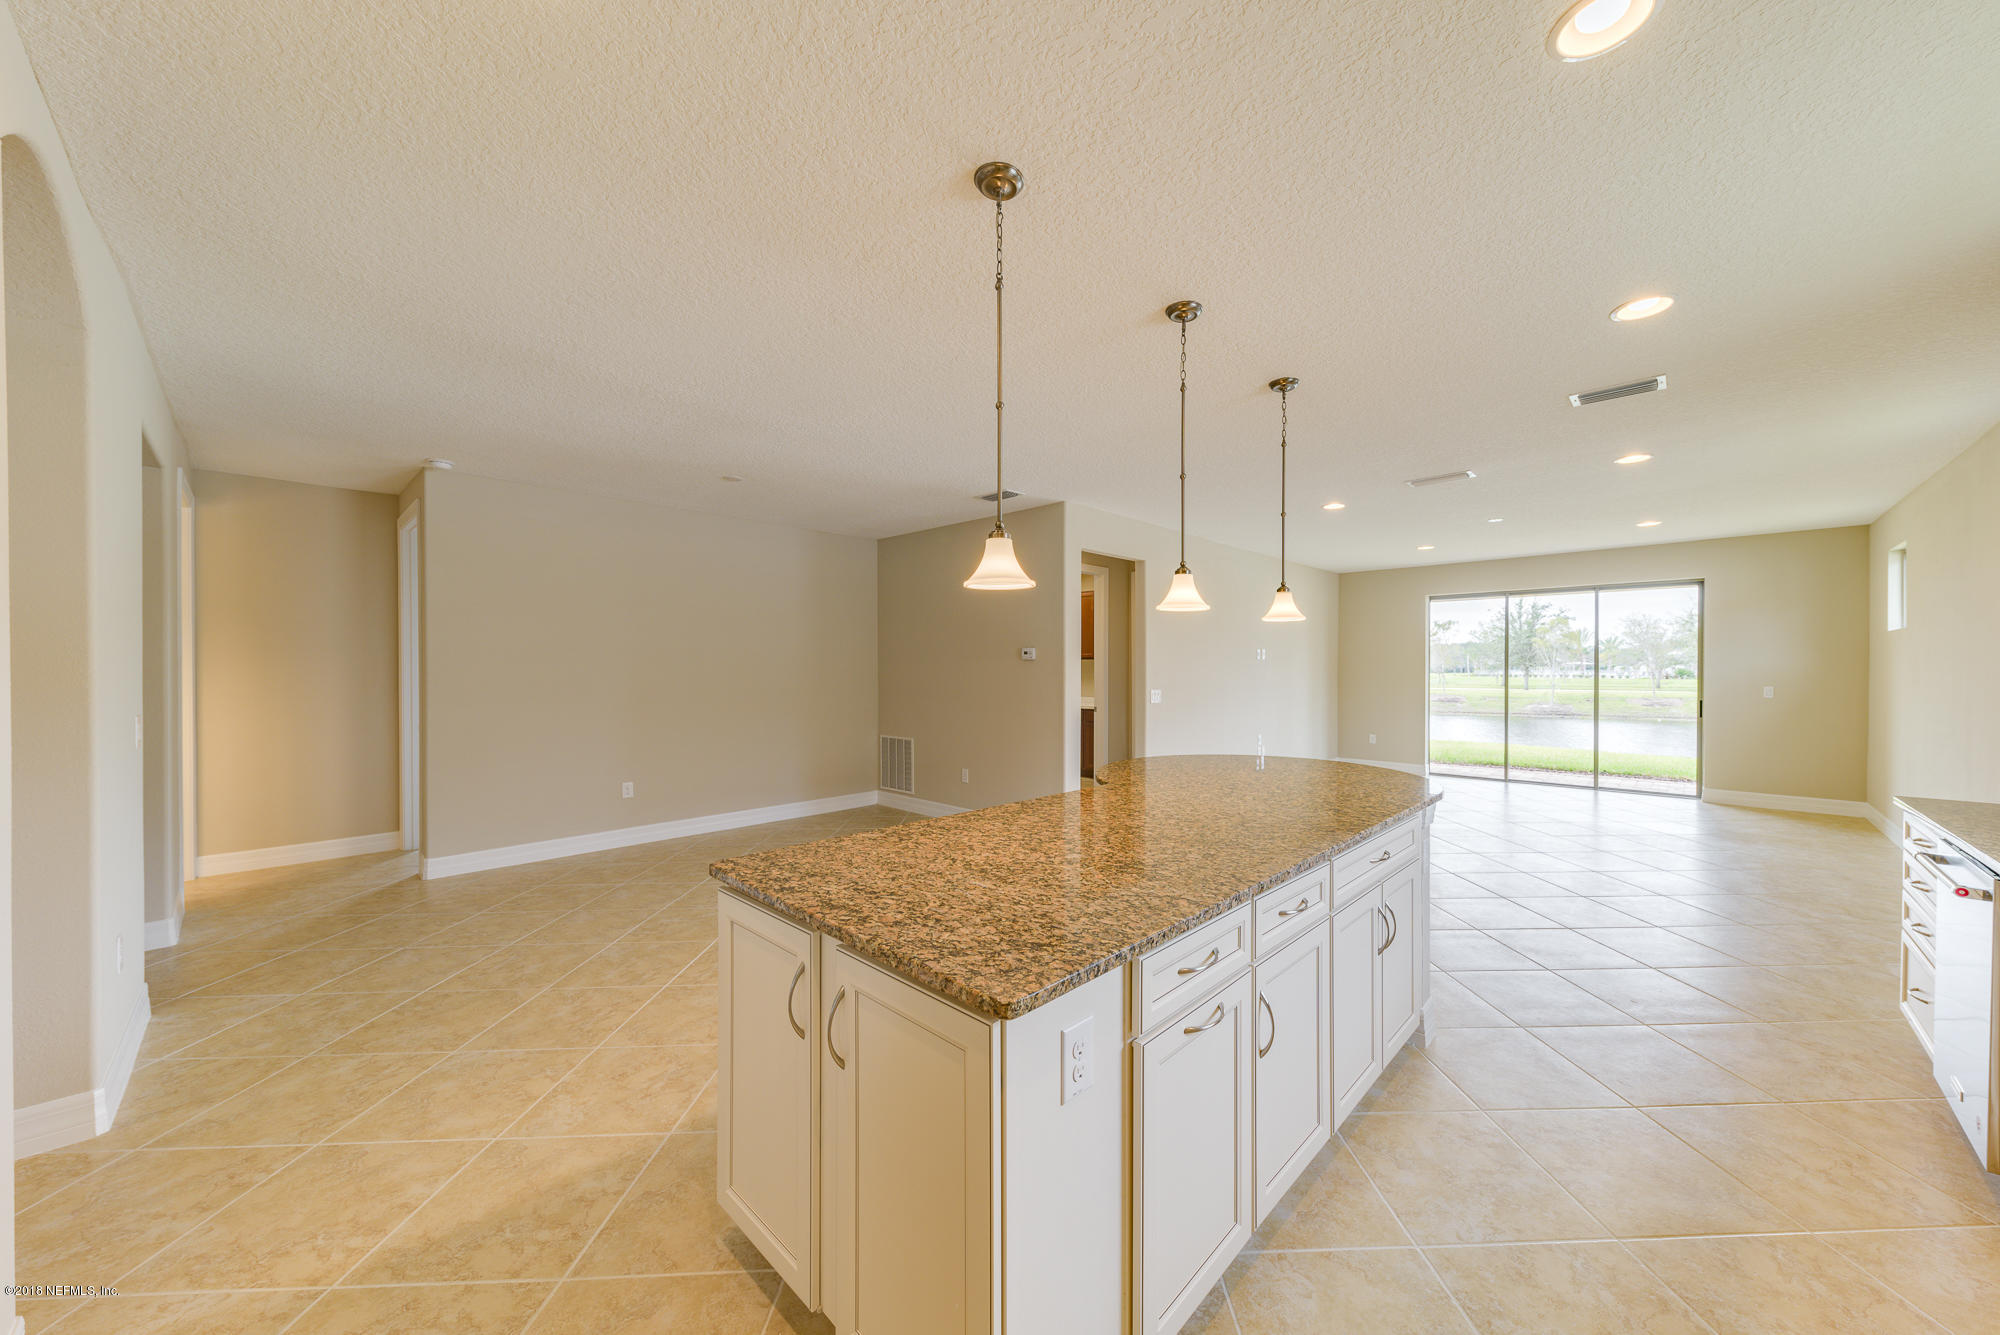 634 WILD CYPRESS, PONTE VEDRA, FLORIDA 32081, 2 Bedrooms Bedrooms, ,2 BathroomsBathrooms,Residential - single family,For sale,WILD CYPRESS,942213